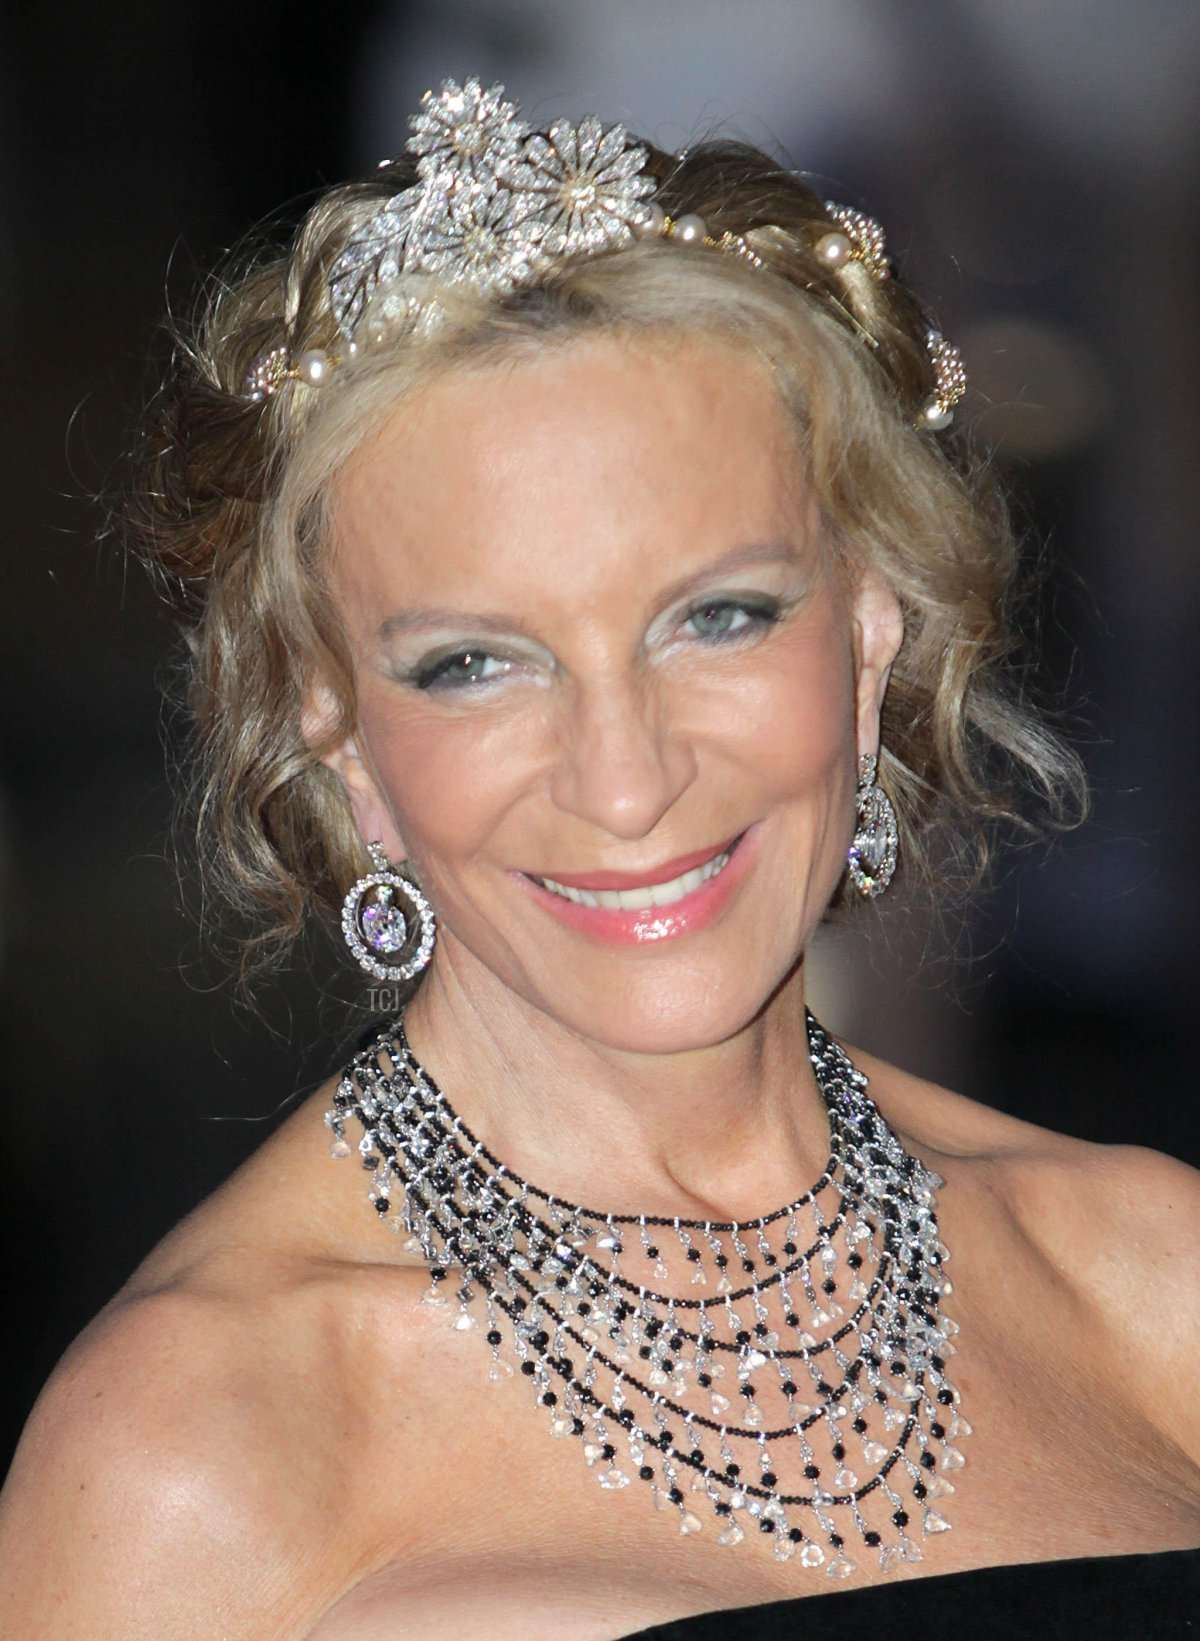 Princess Michael of Kent attend the official dinner on the Opera terraces after the religious wedding of Prince Albert II and Princess Charlene of Monaco in Monaco, 02 July 2011